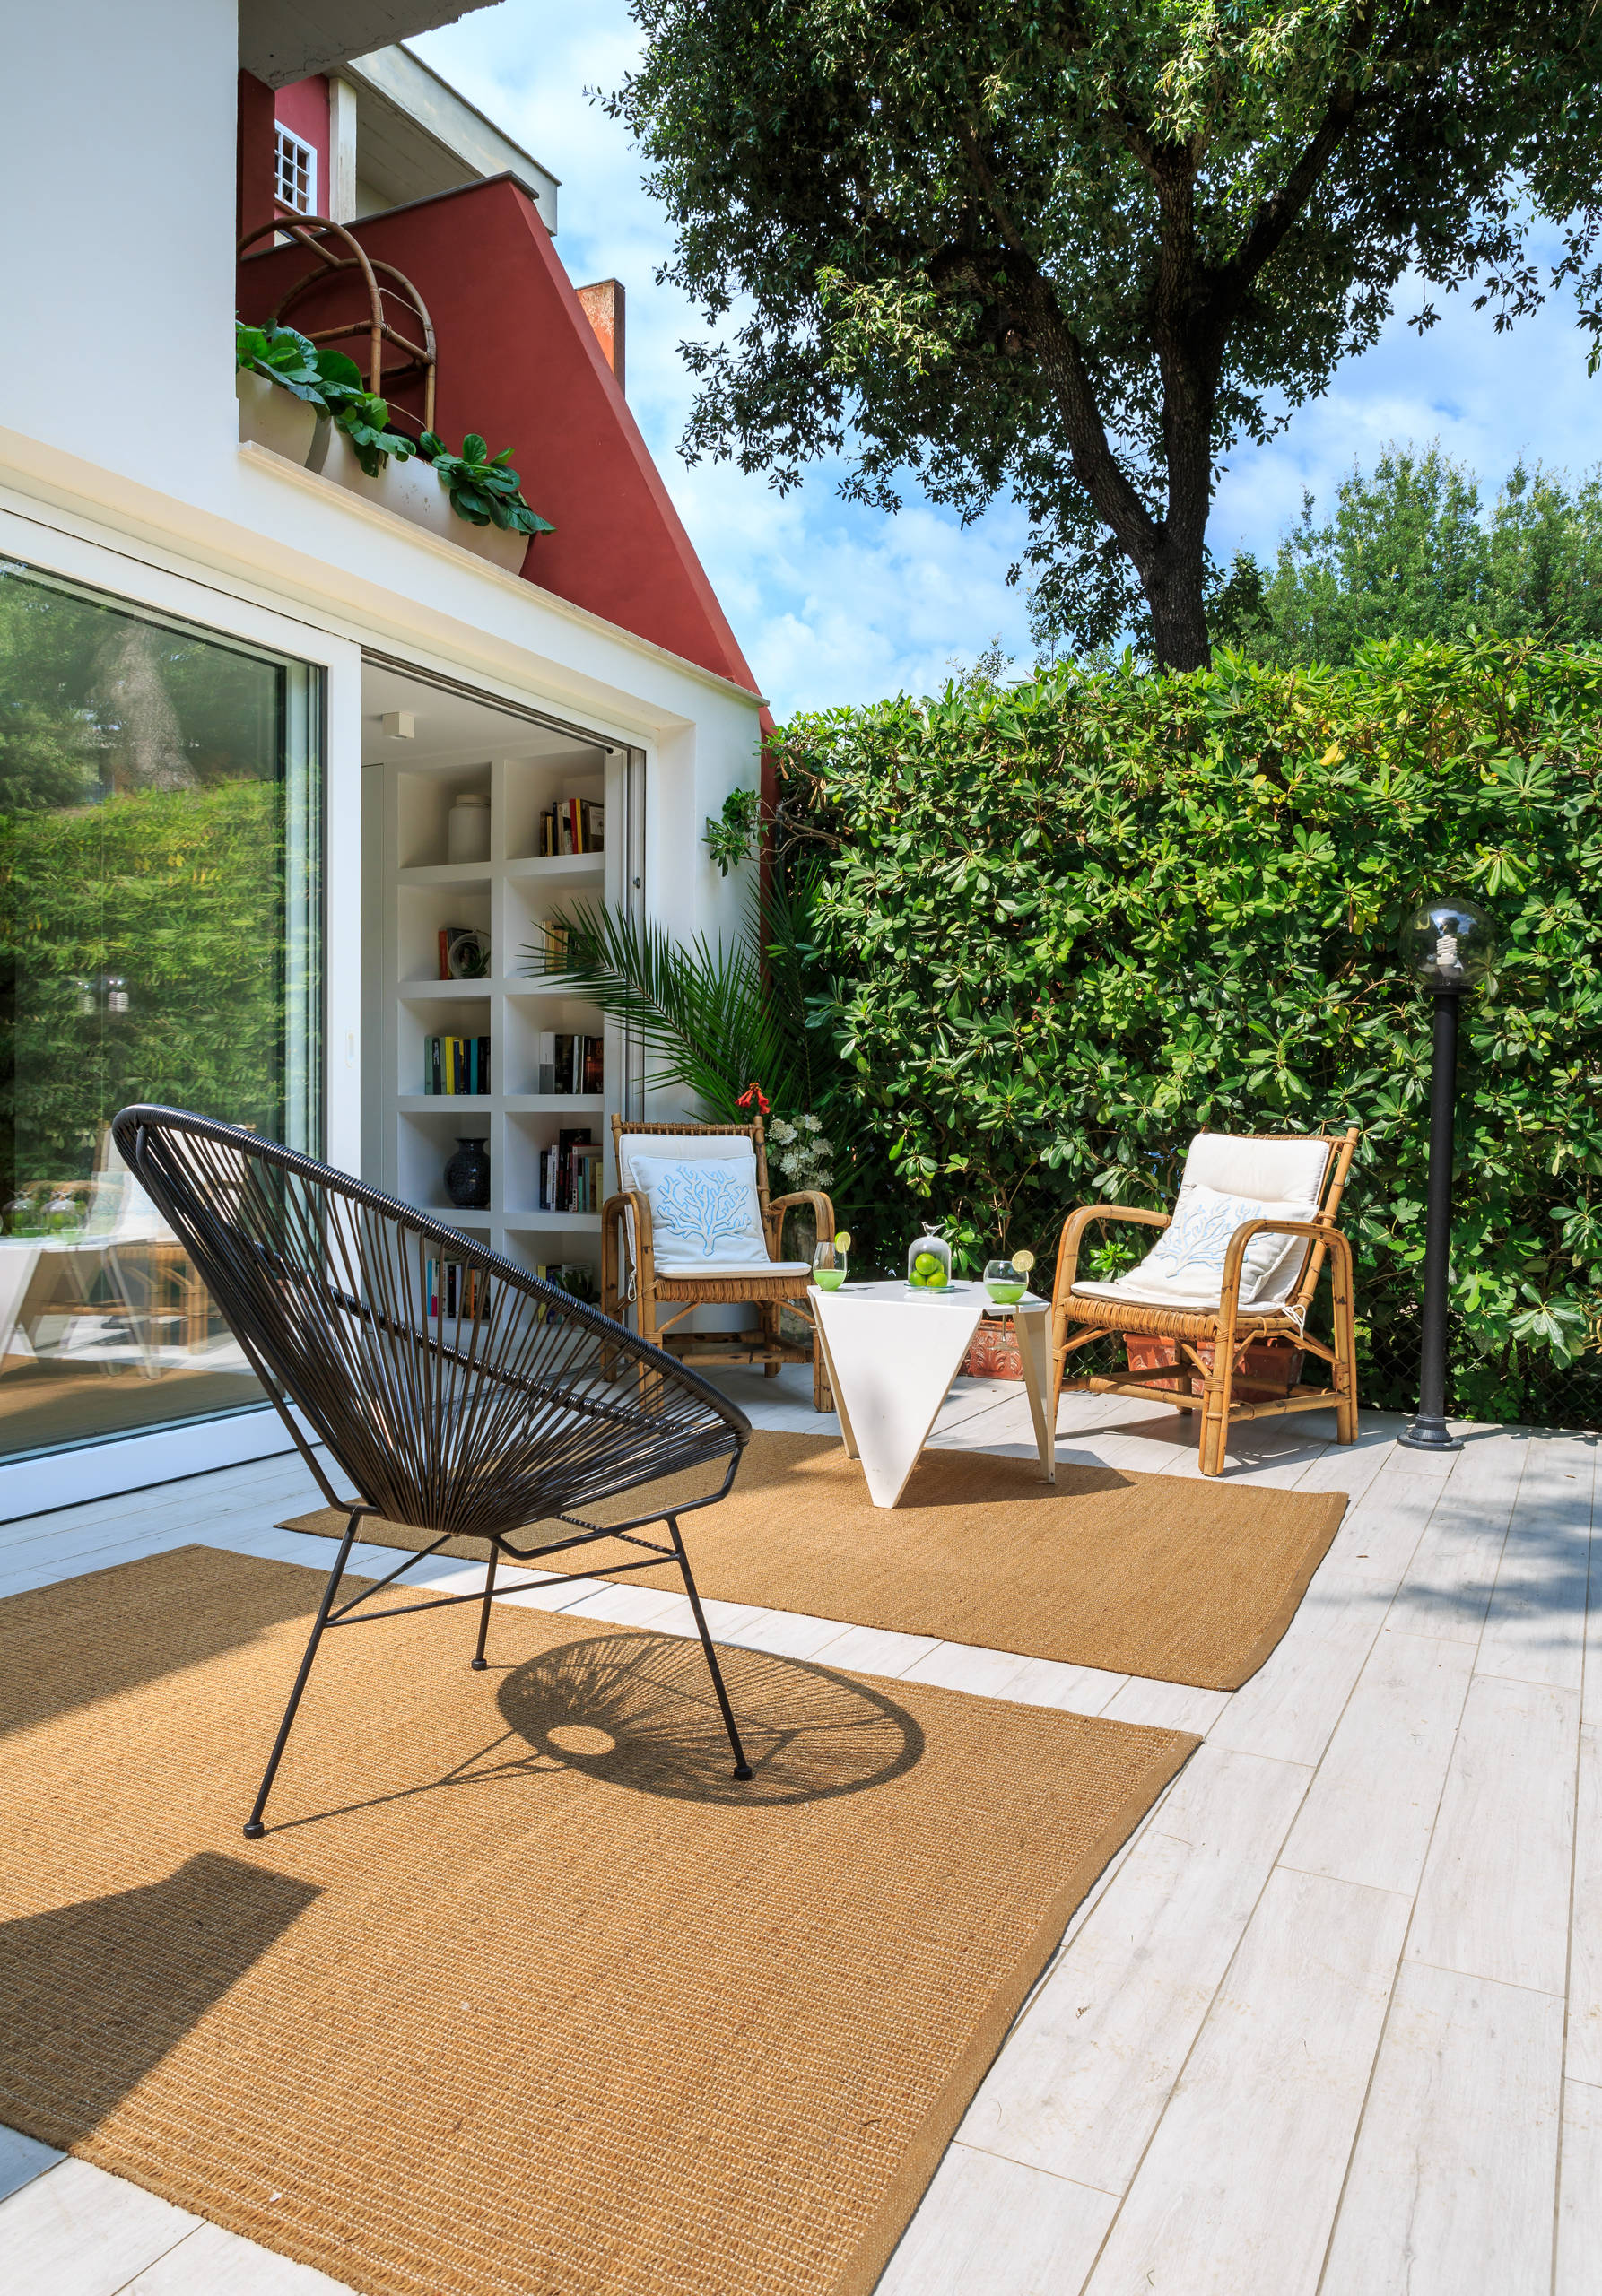 7 Stunning Home Extension Ideas: 16 Stunning Modern Deck Designs That Will Extend Your Home